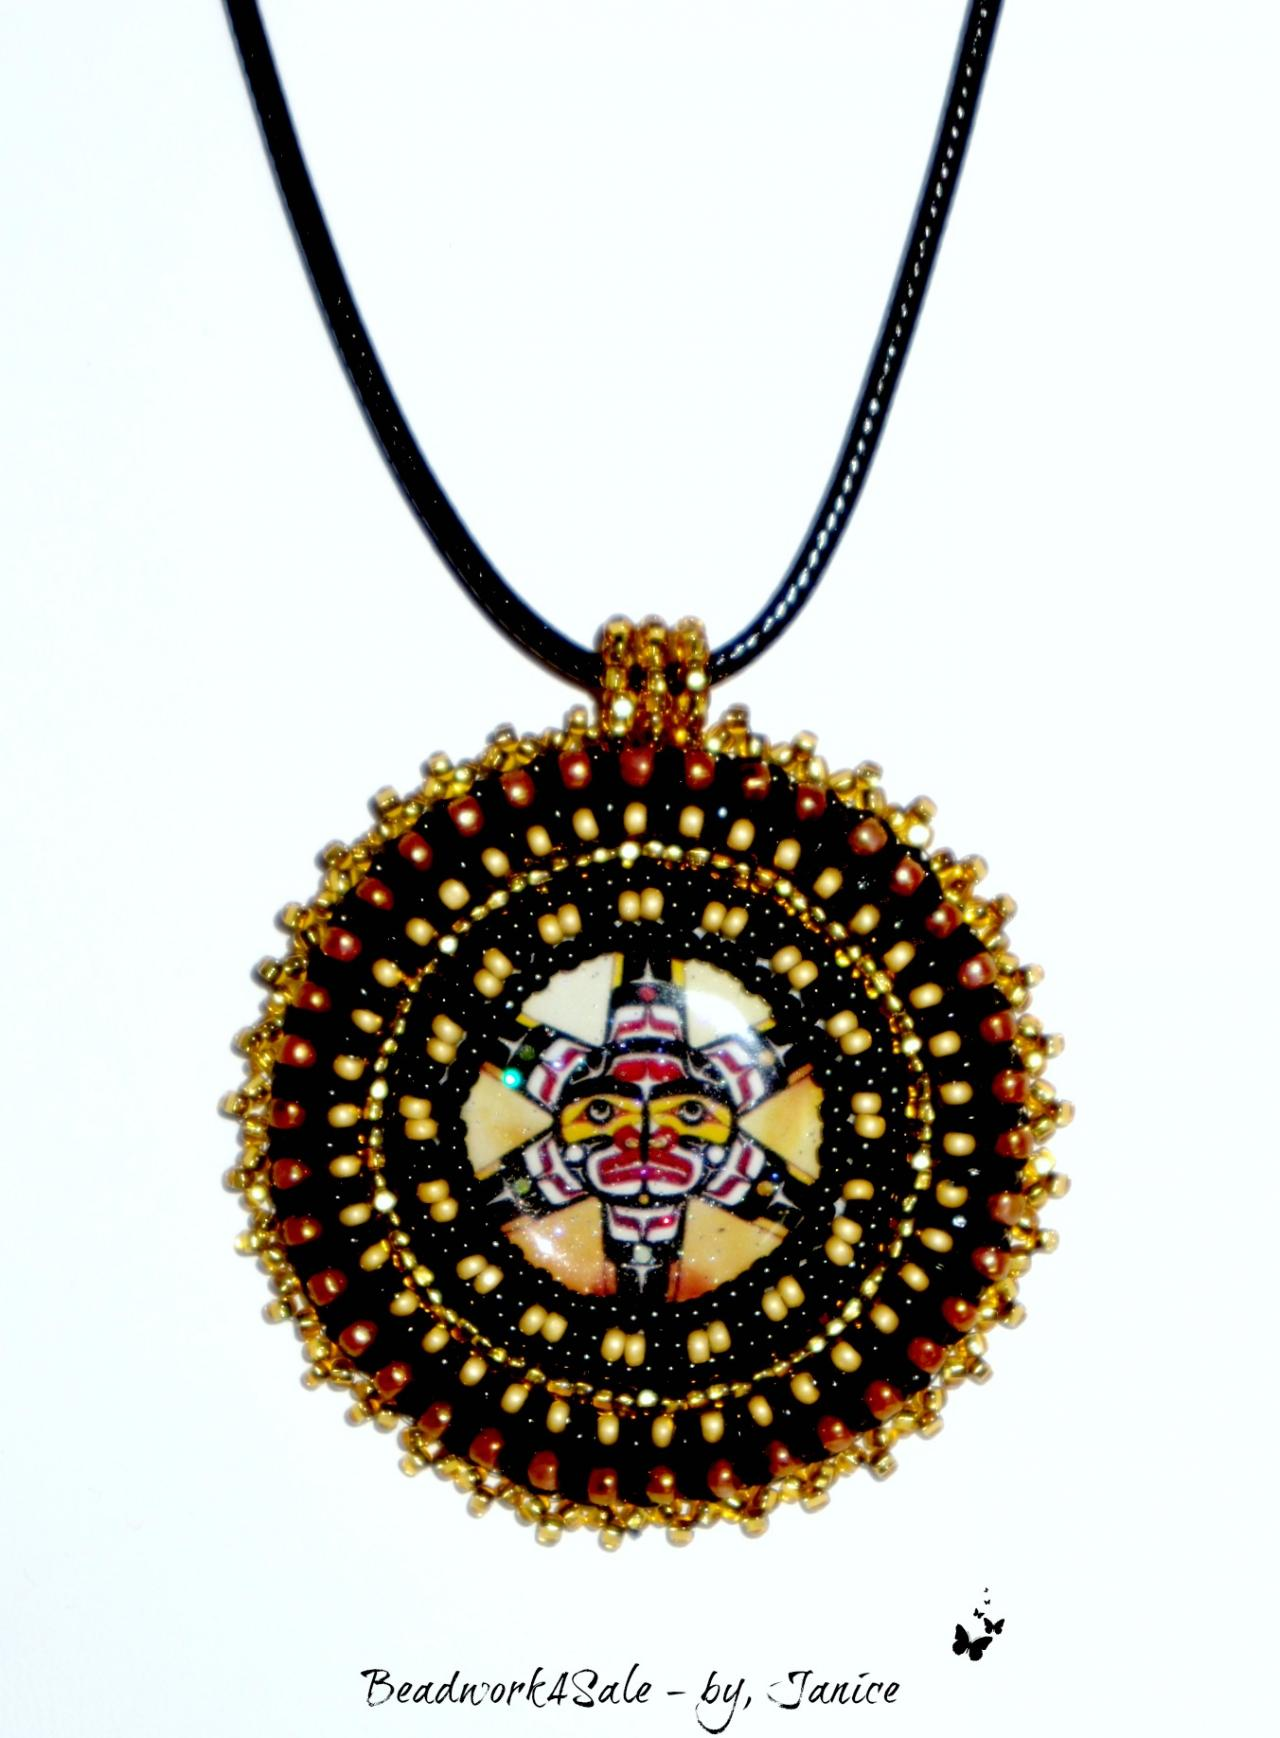 Pacific Northwest Tribal Medallion Handmade Beaded Necklace